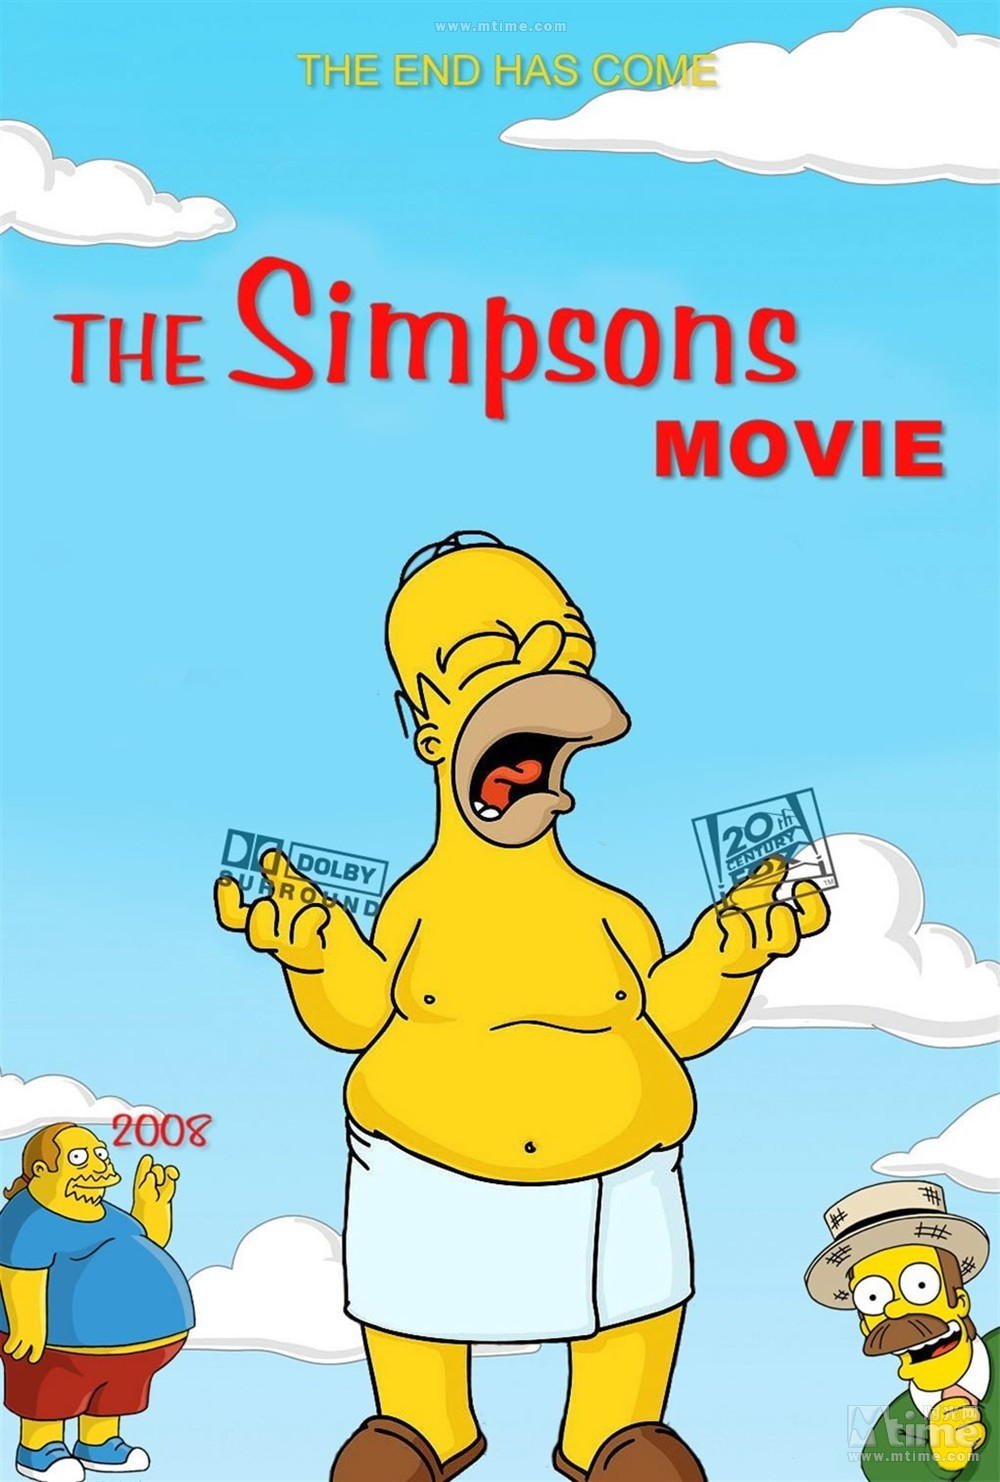 The Simpsons Movie Posters Hd Print Size 50x70cm Wall Sticker Free Shipping 7 Sticker Generator Sticker Butterflystickers Space Aliexpress